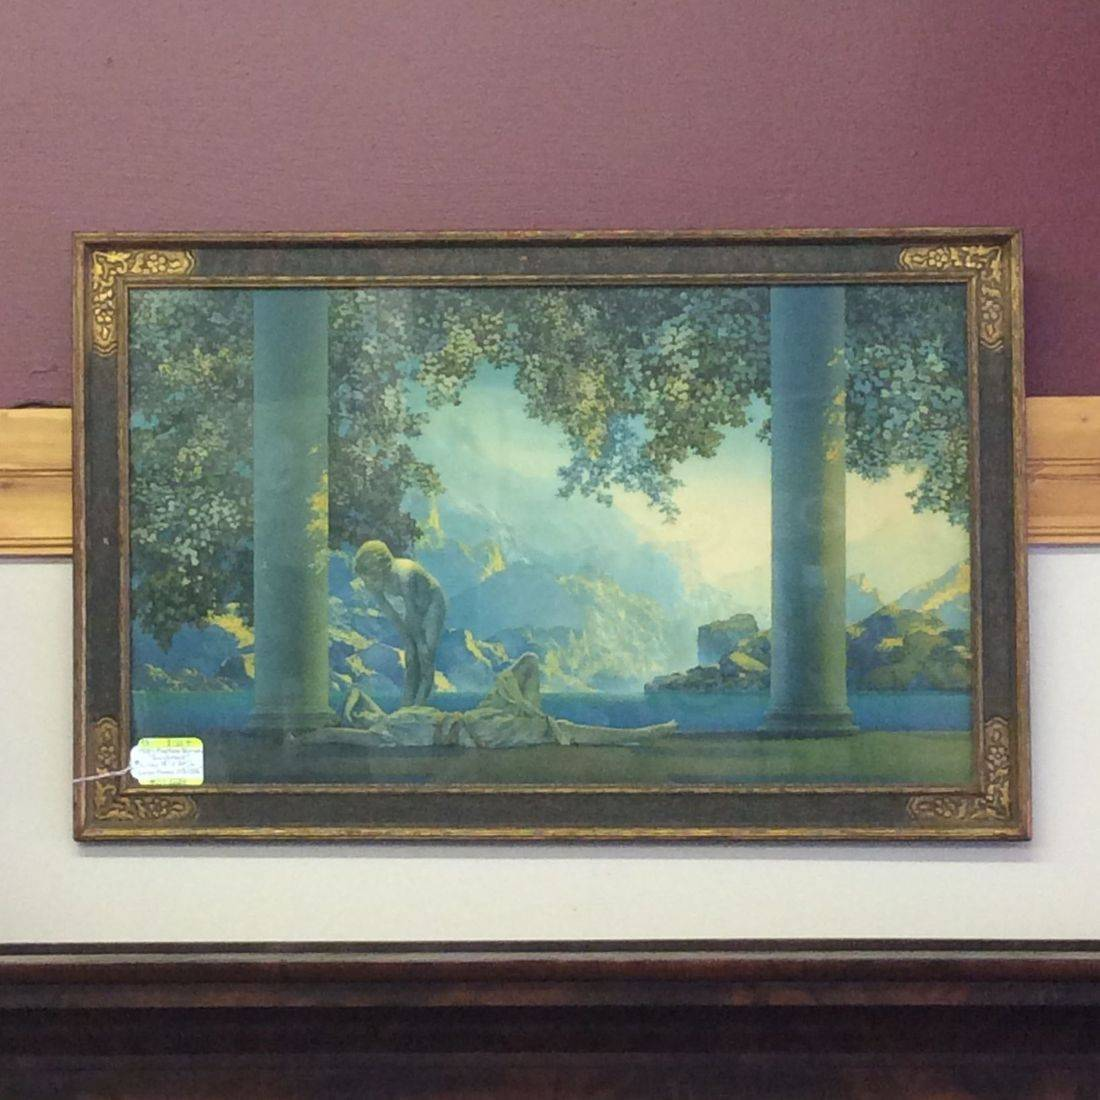 "1920's Maxfield Parrish ""Daybreak"" Litho  18-1/2"" x 30-1/2"" in Period Gesso 21-1/2"" x 33-1/2"" Frame   $155.00"